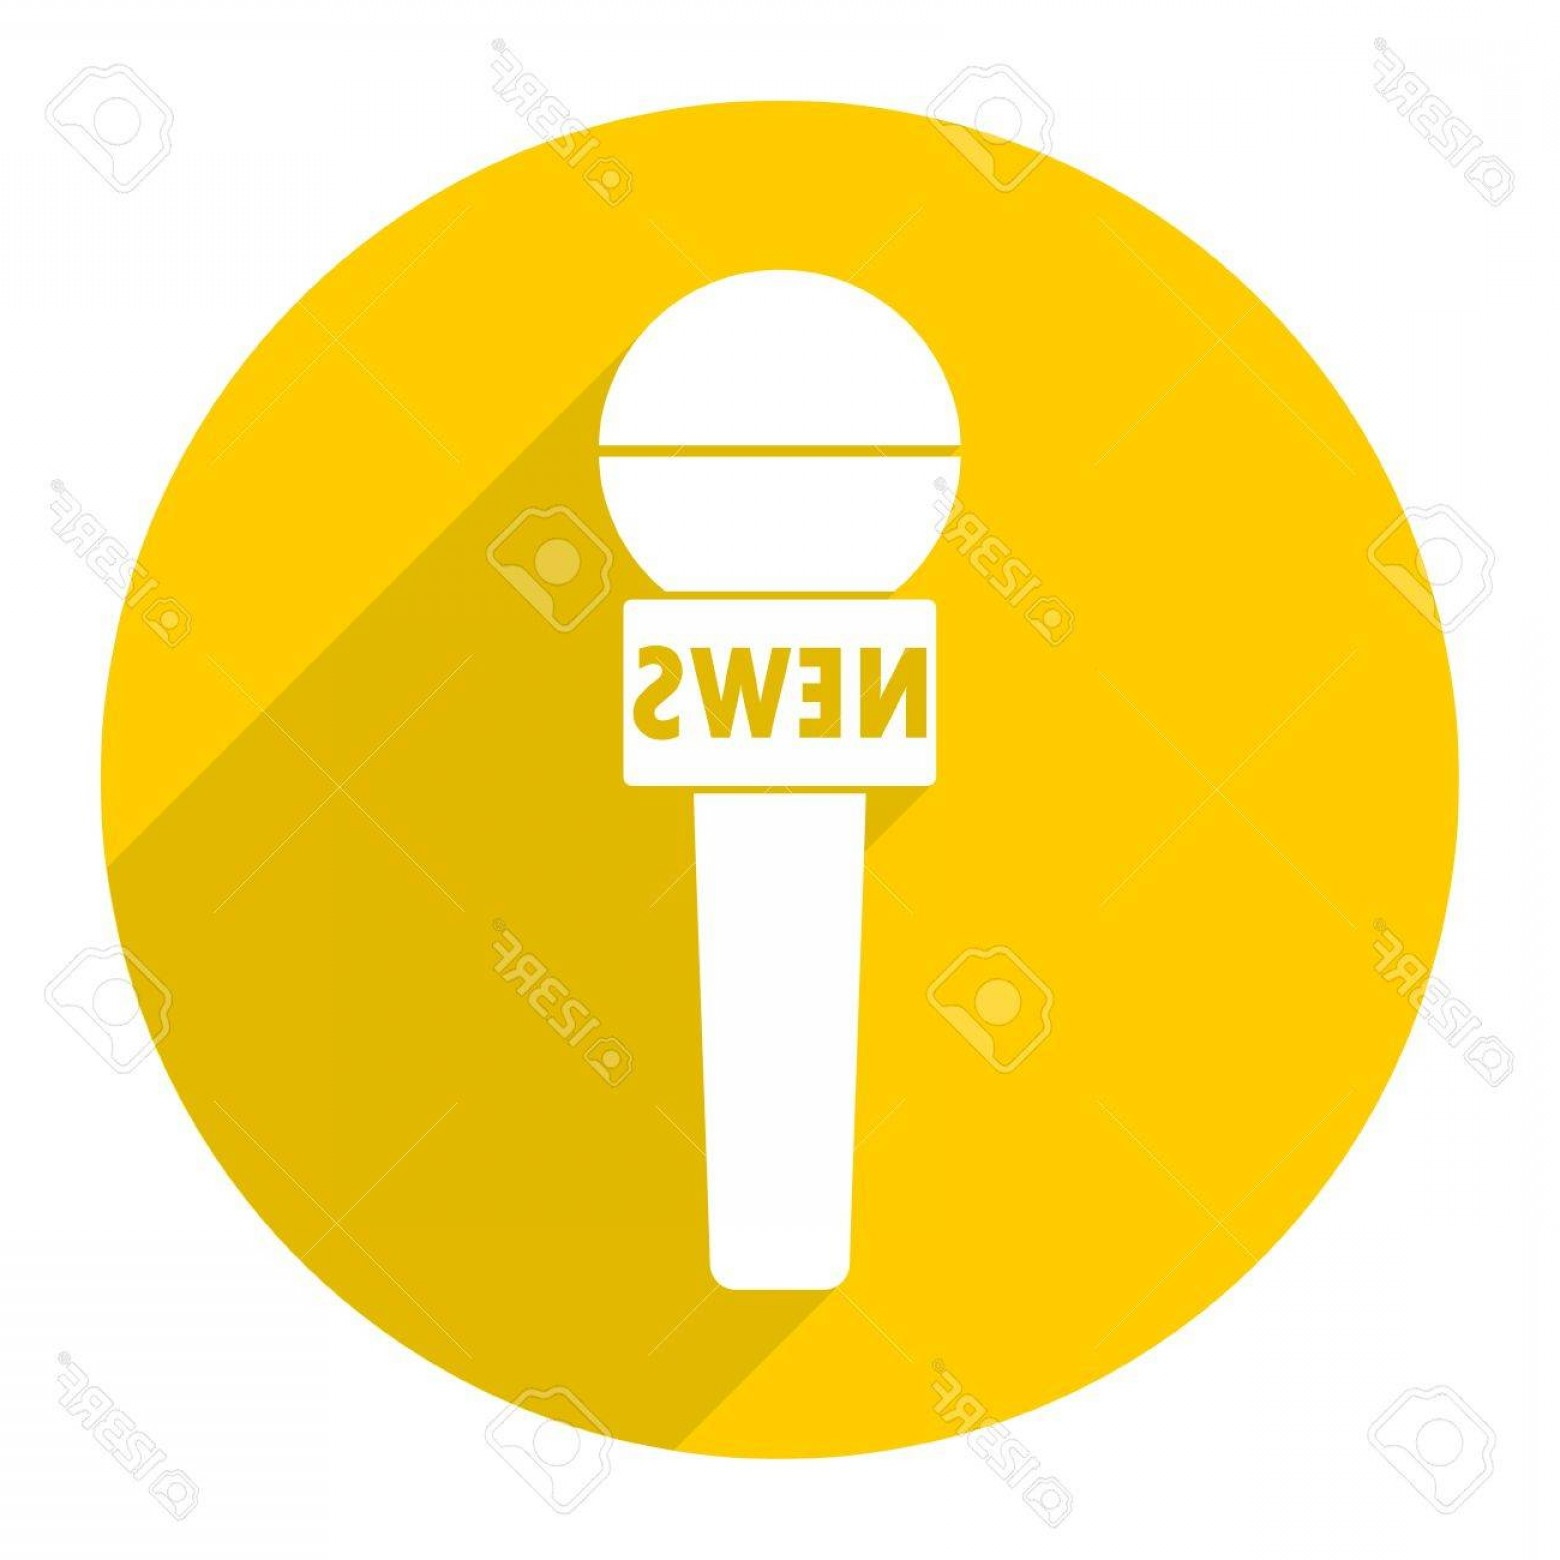 News Microphone Icon Vector: Photostock Vector News Reporter Microphone Icon With Long Shadow